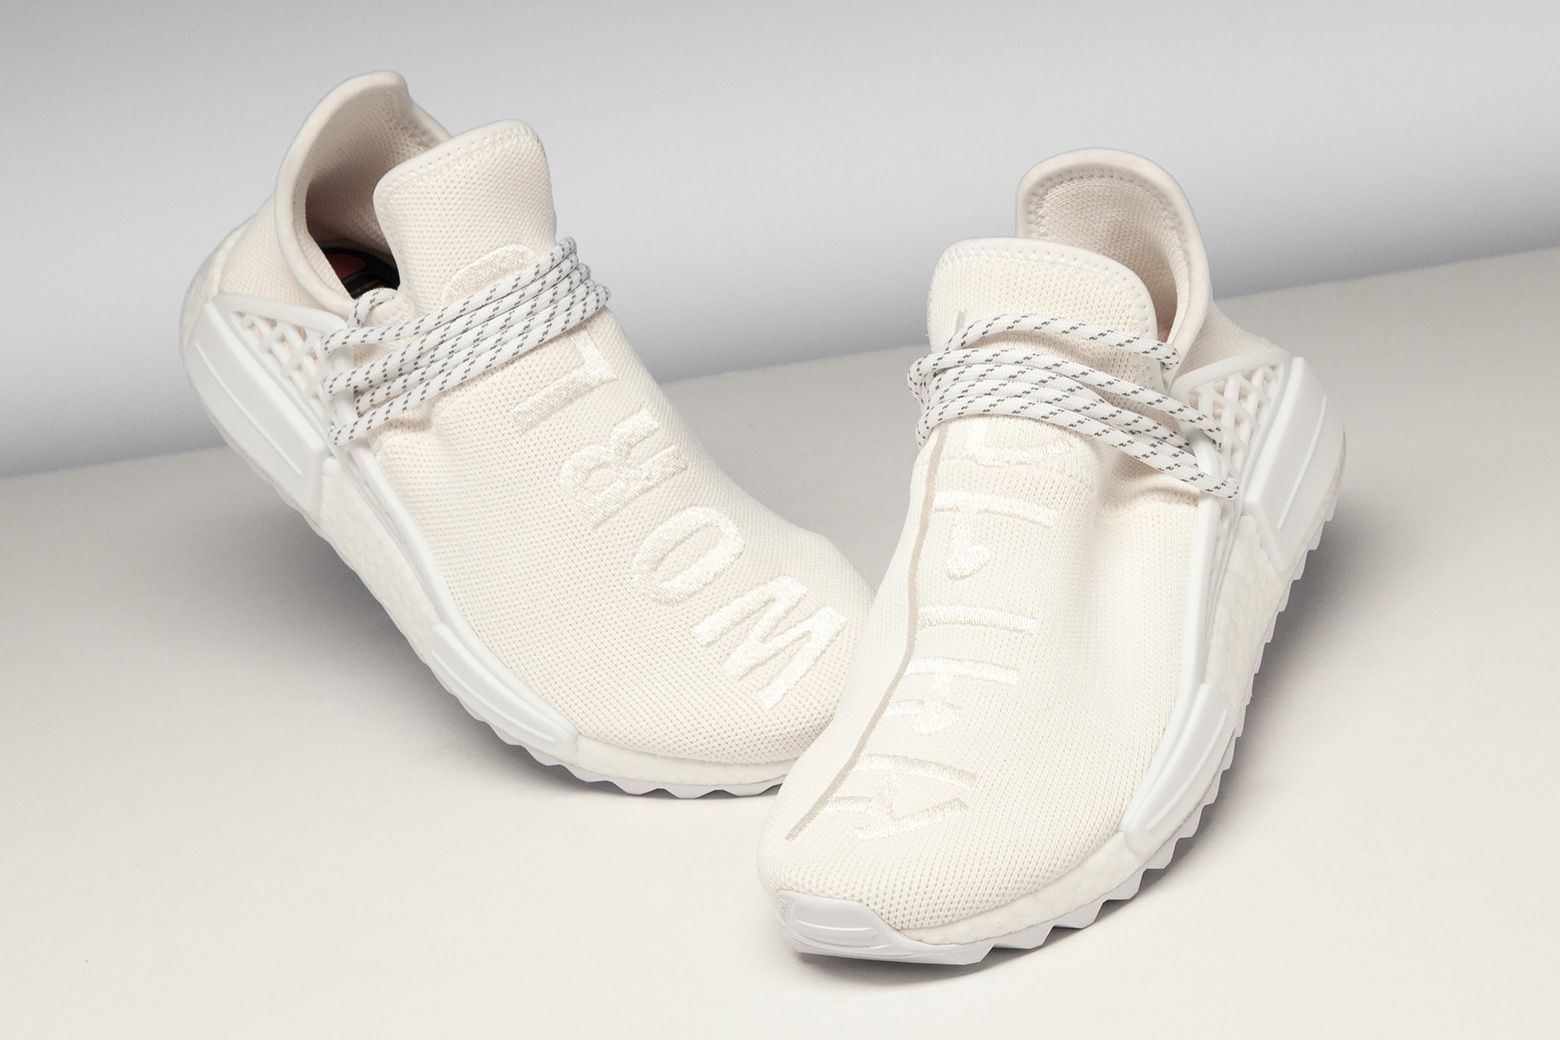 pretty nice 6c73c 4c142 adidas PW Human Race NMD TR 'Blank Canvas' Shoes - Size 5 ...